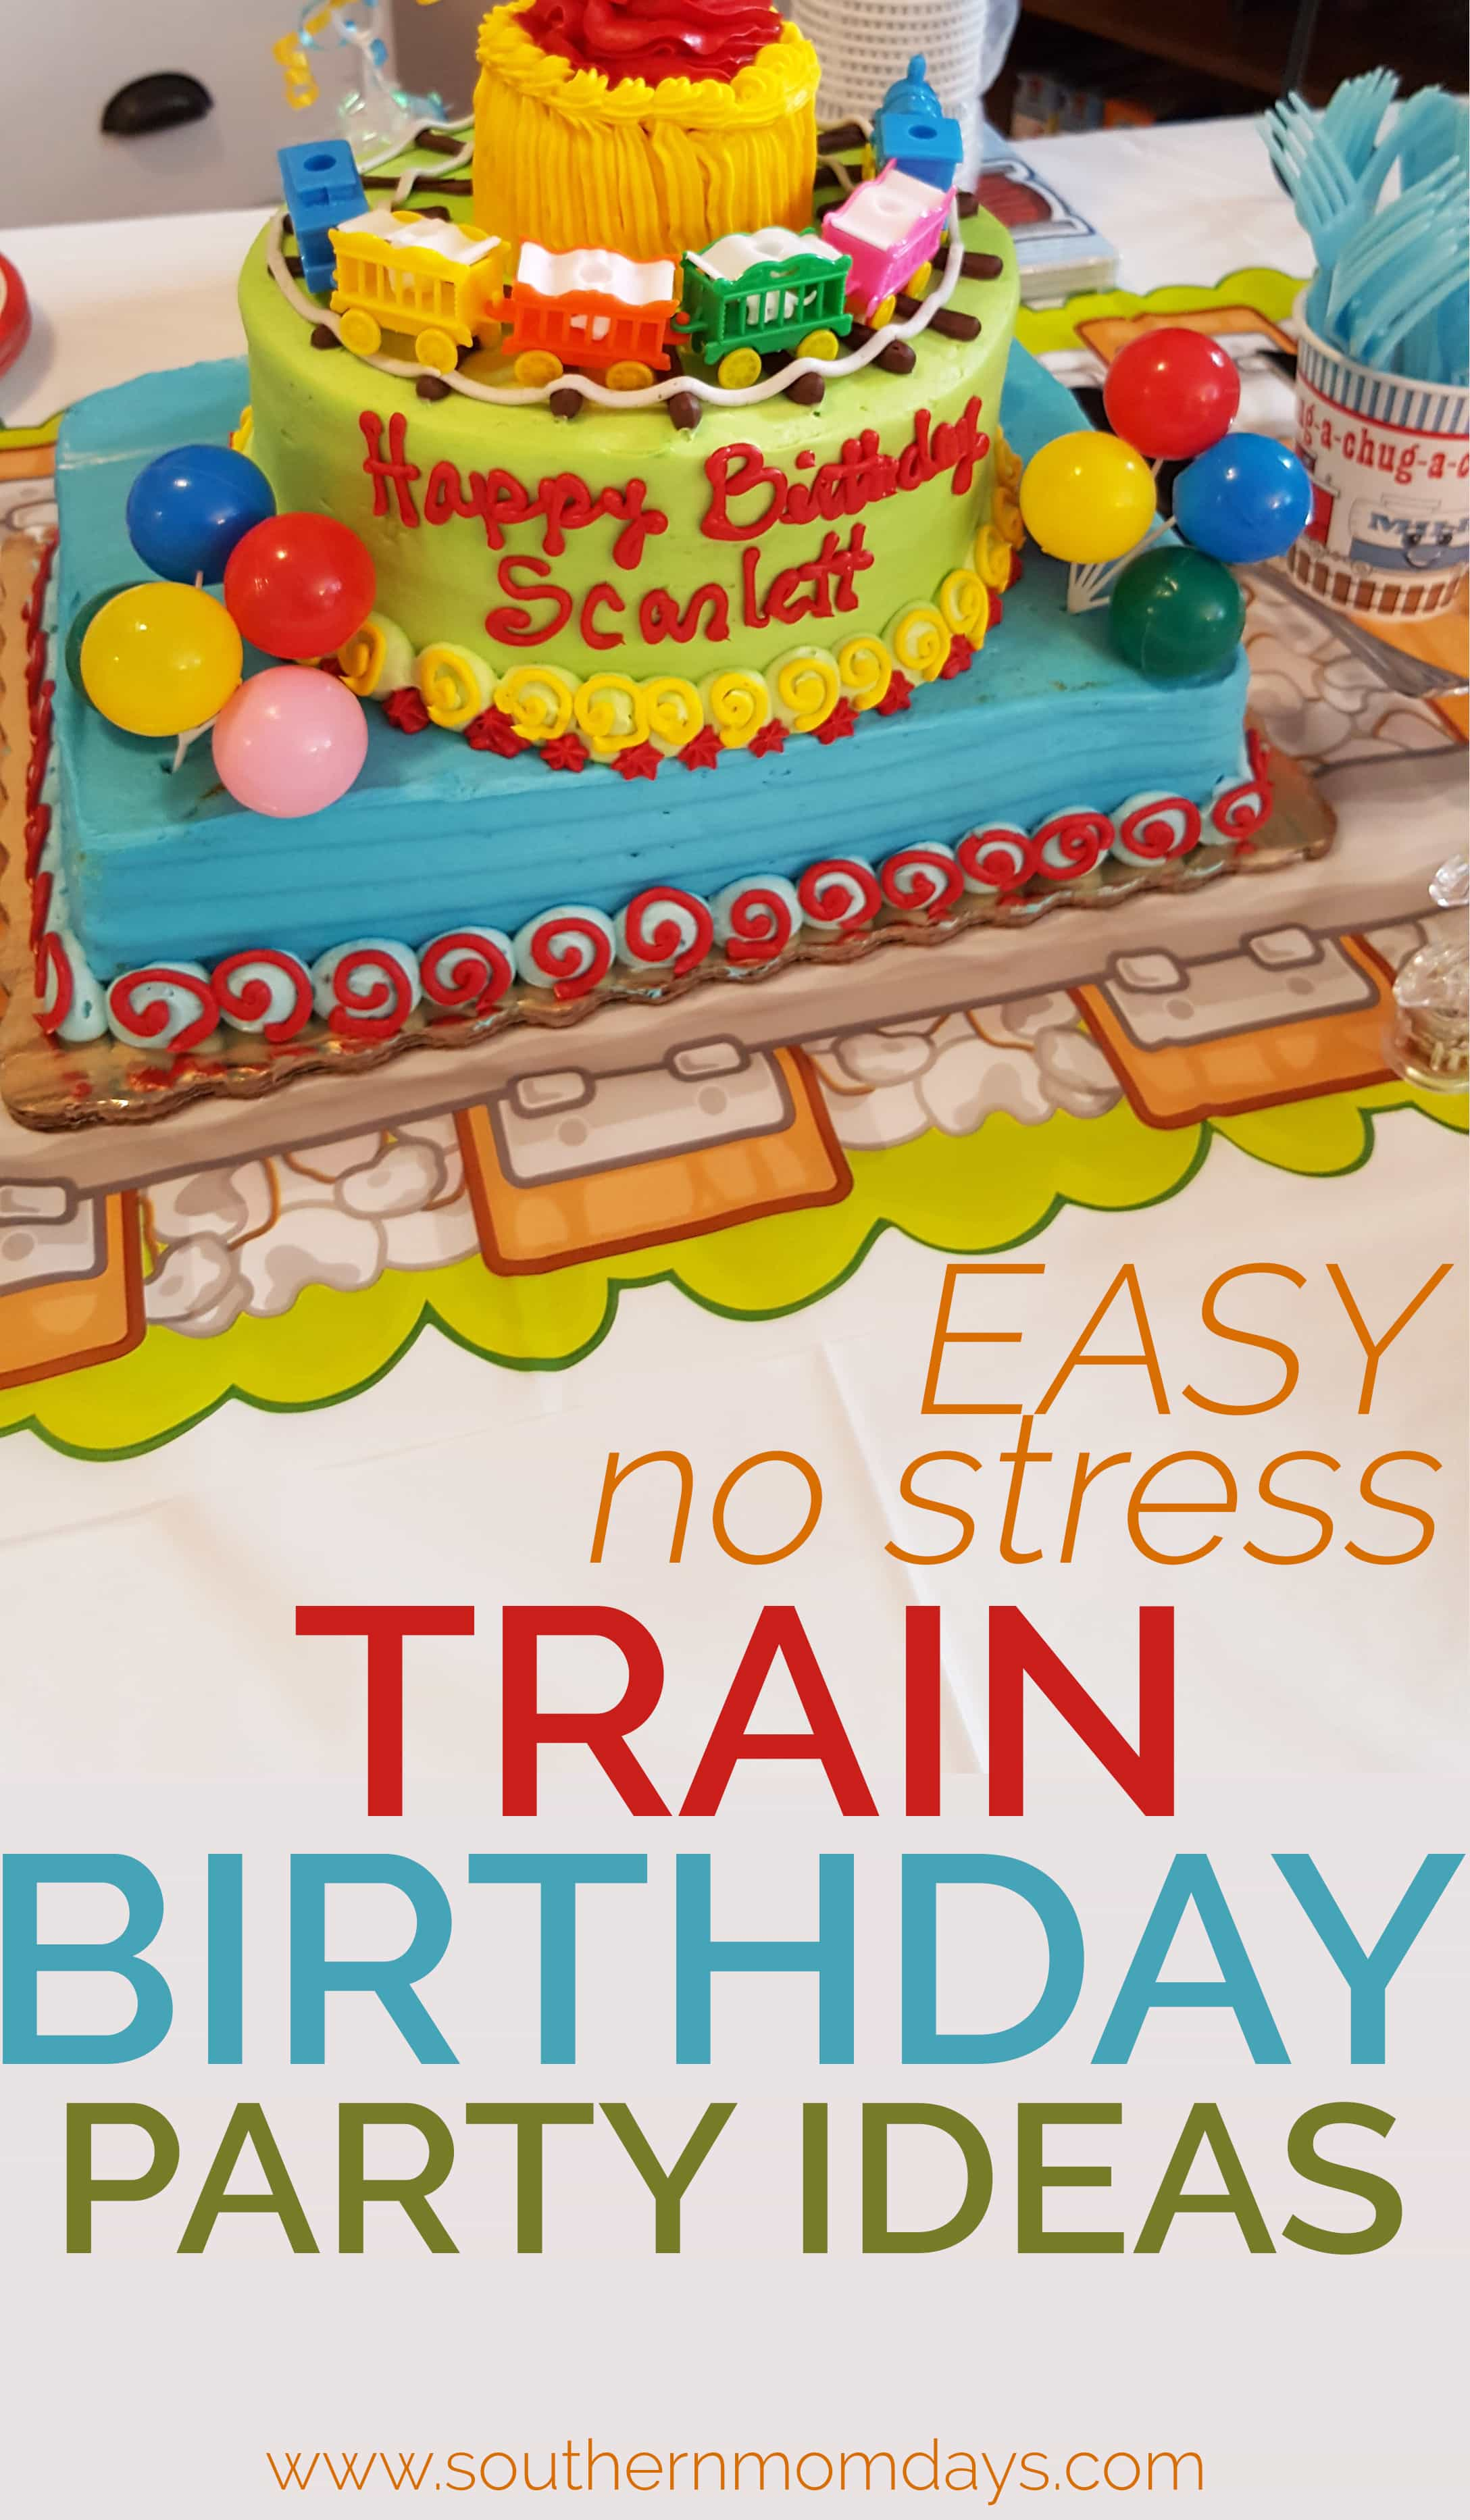 Easy No Stress Train Birthday Party Ideas Featured On The Southern Momdays Blog